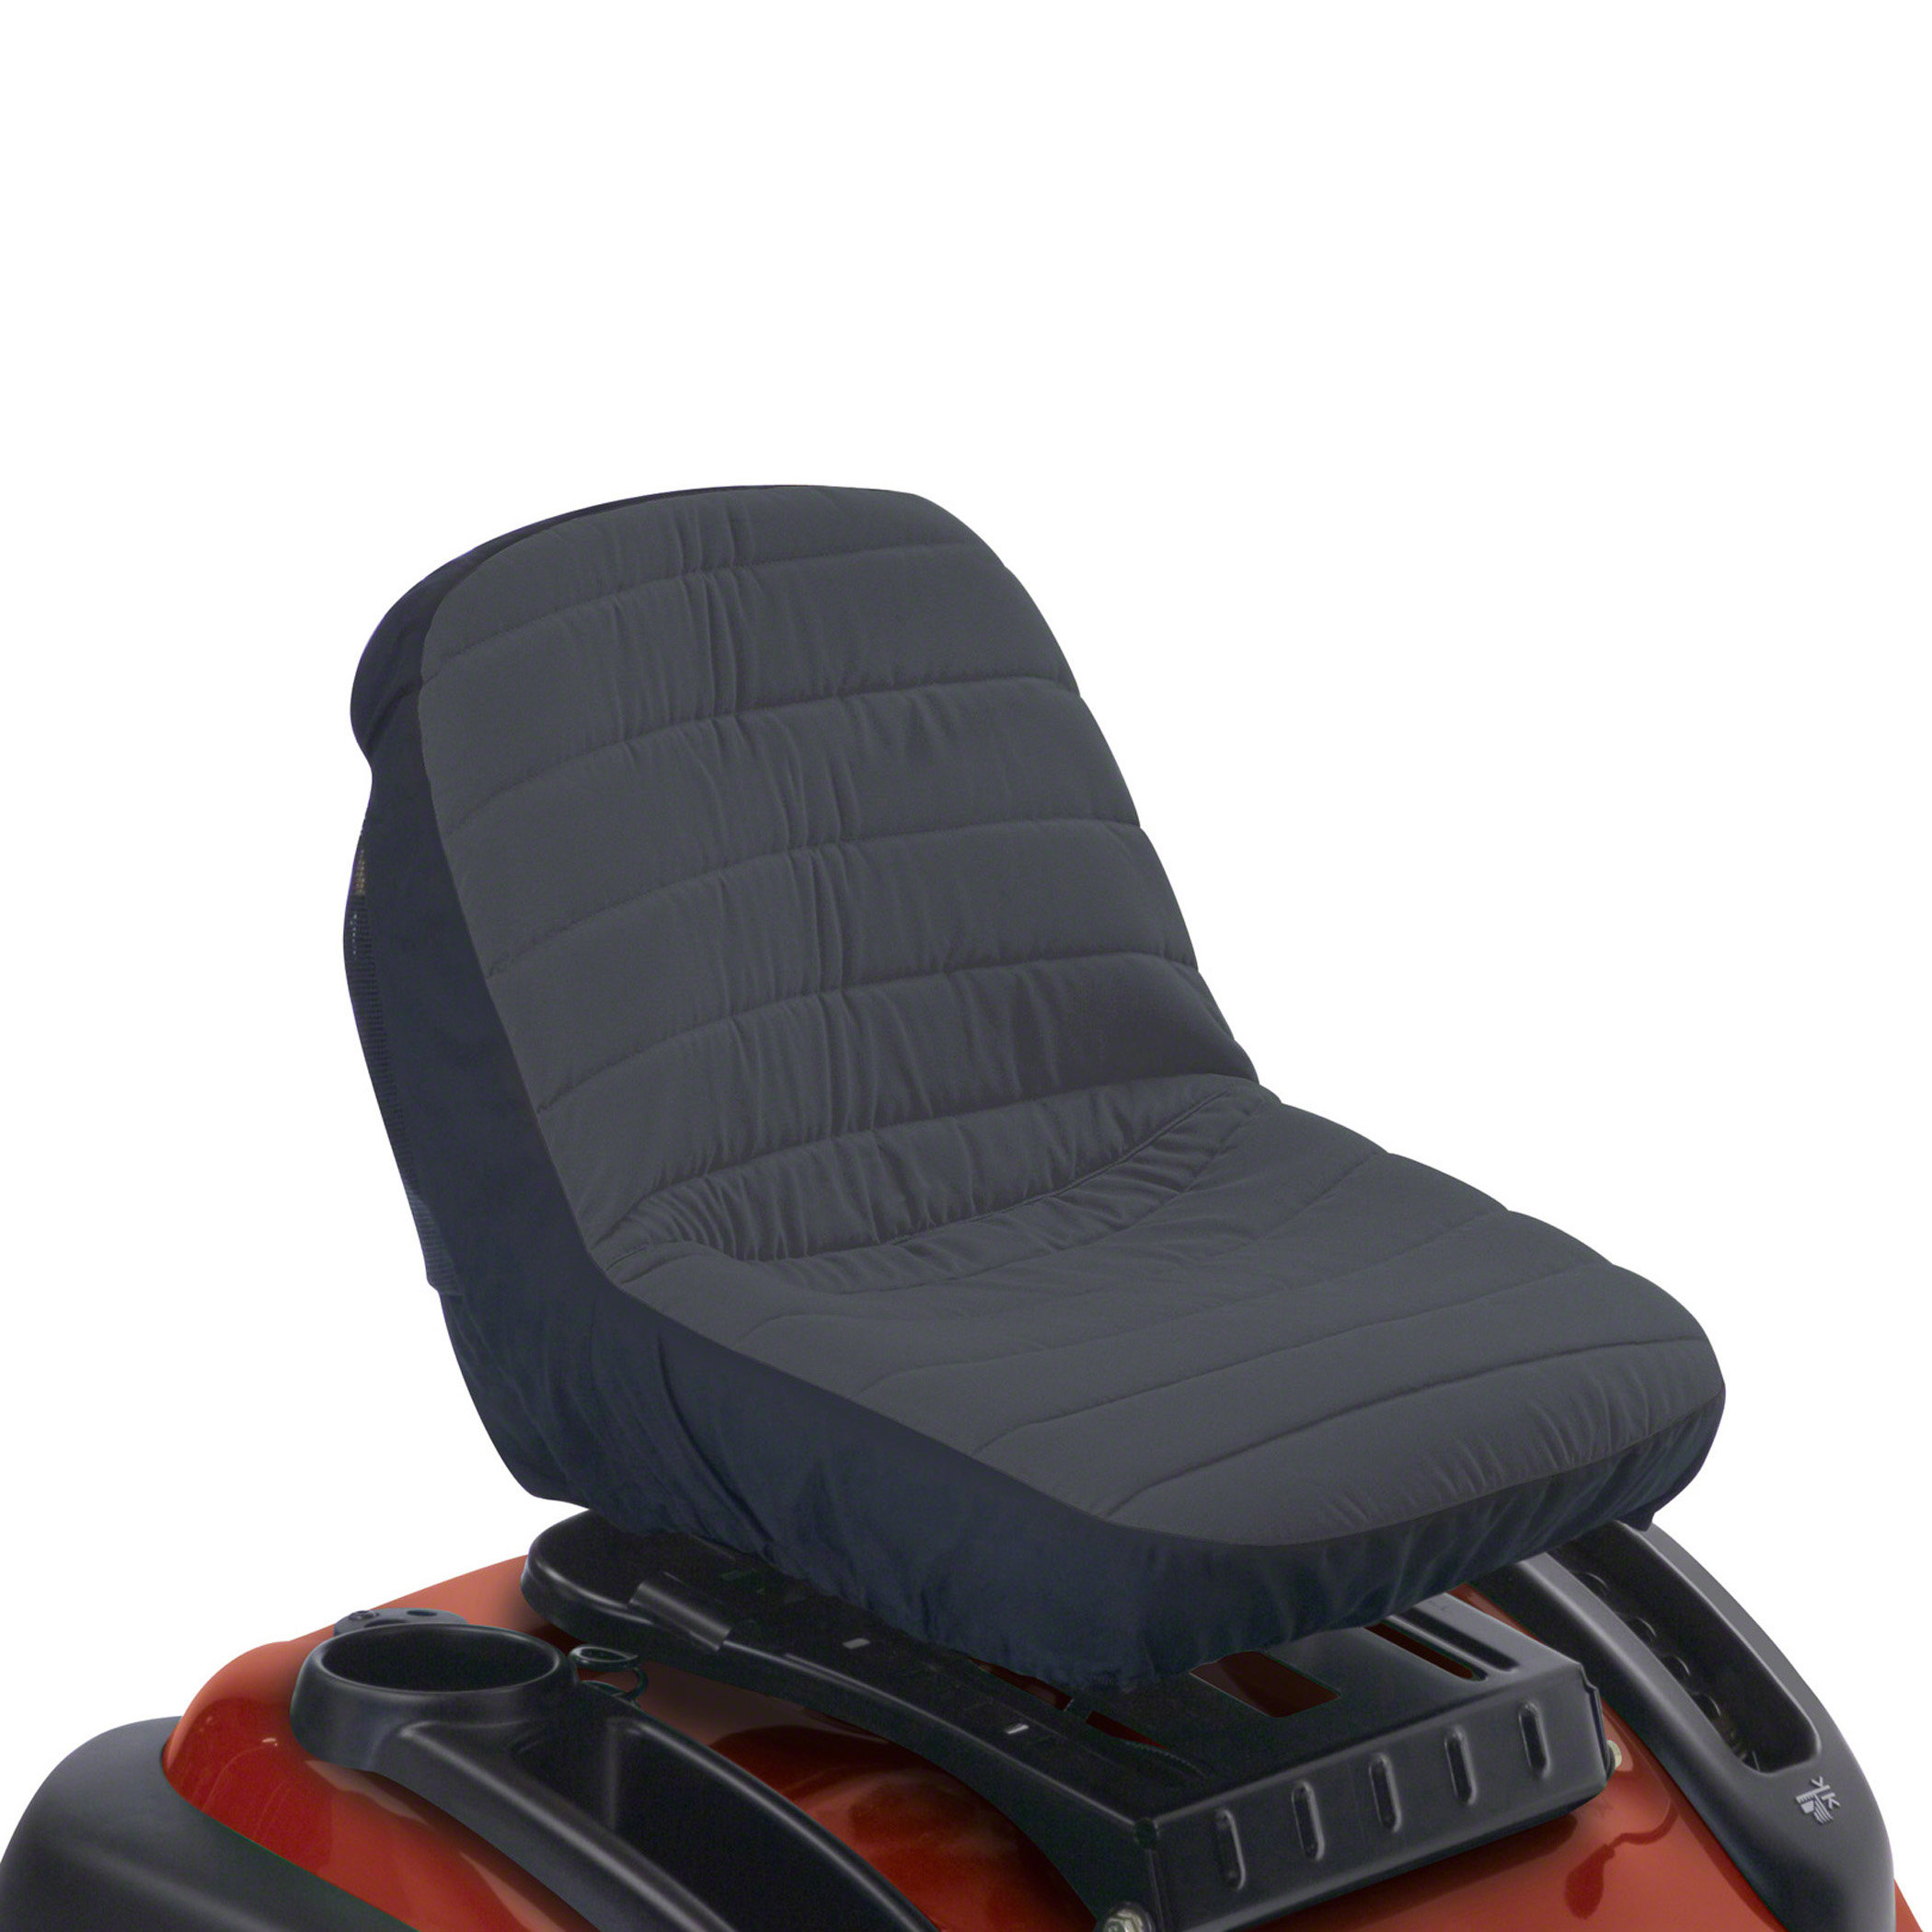 Replacement Tractor Seat Covers : Amazon classic accessories deluxe riding lawn